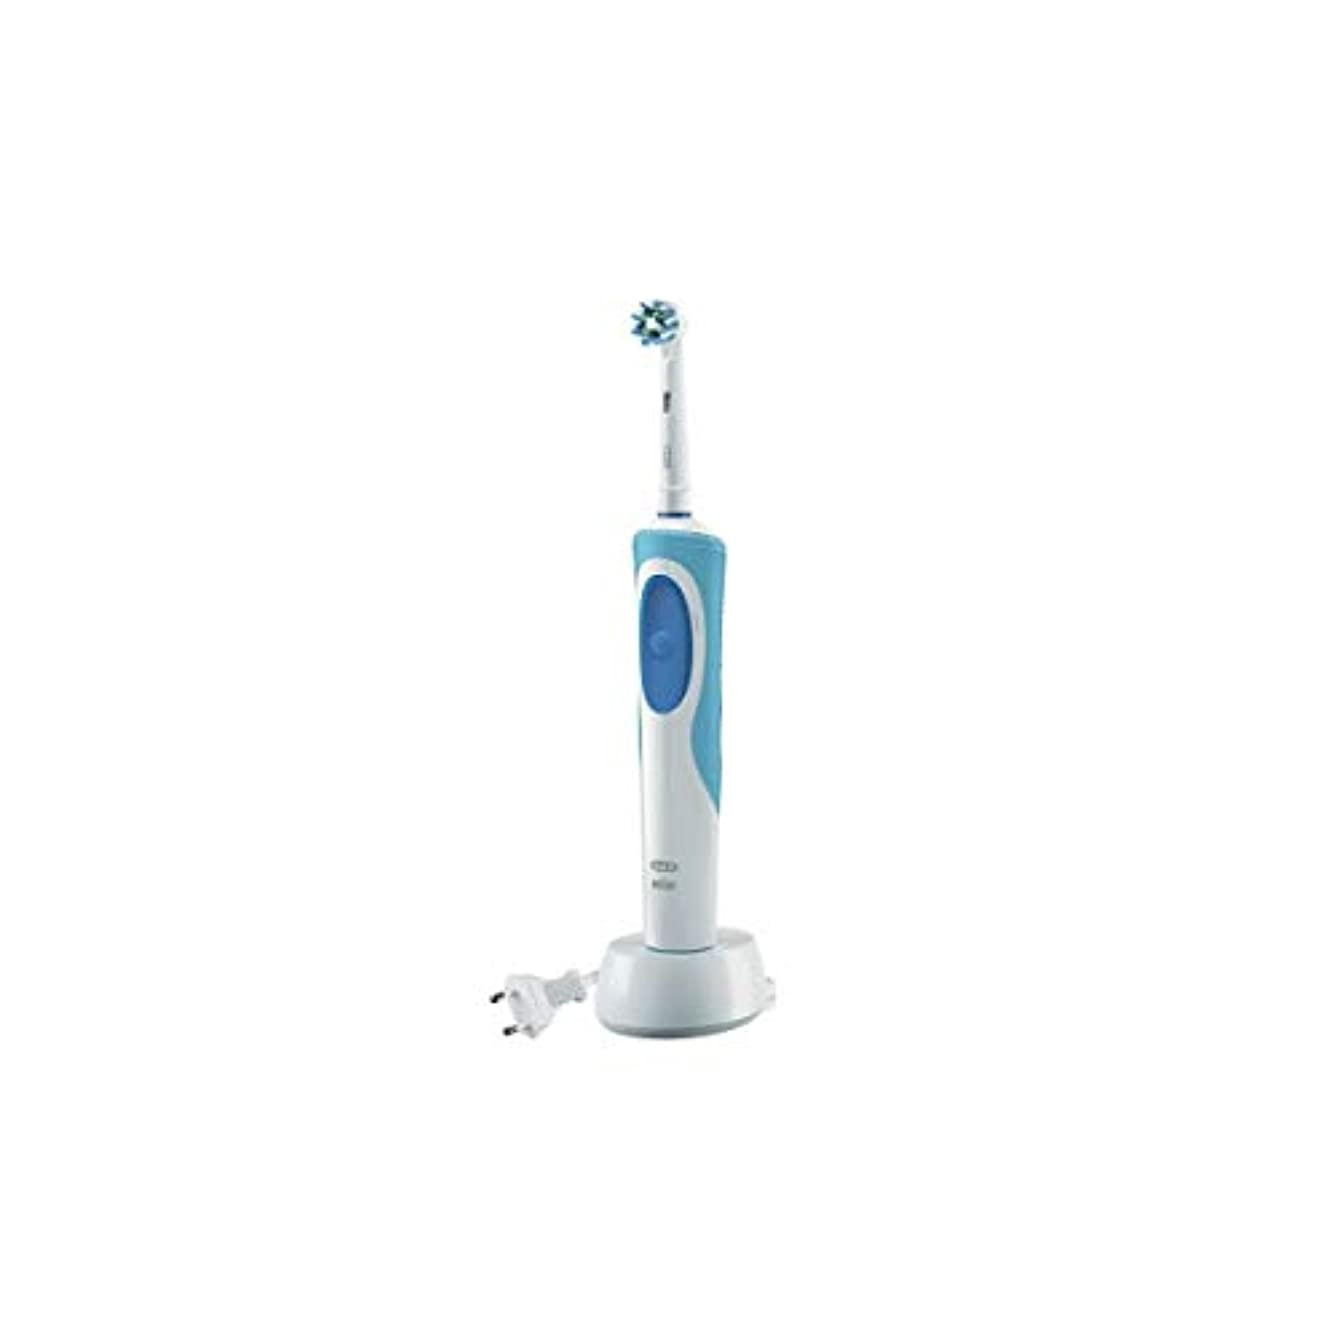 ホース旋回結果Oral B Vitality Cross Action Electric Toothbrush [並行輸入品]